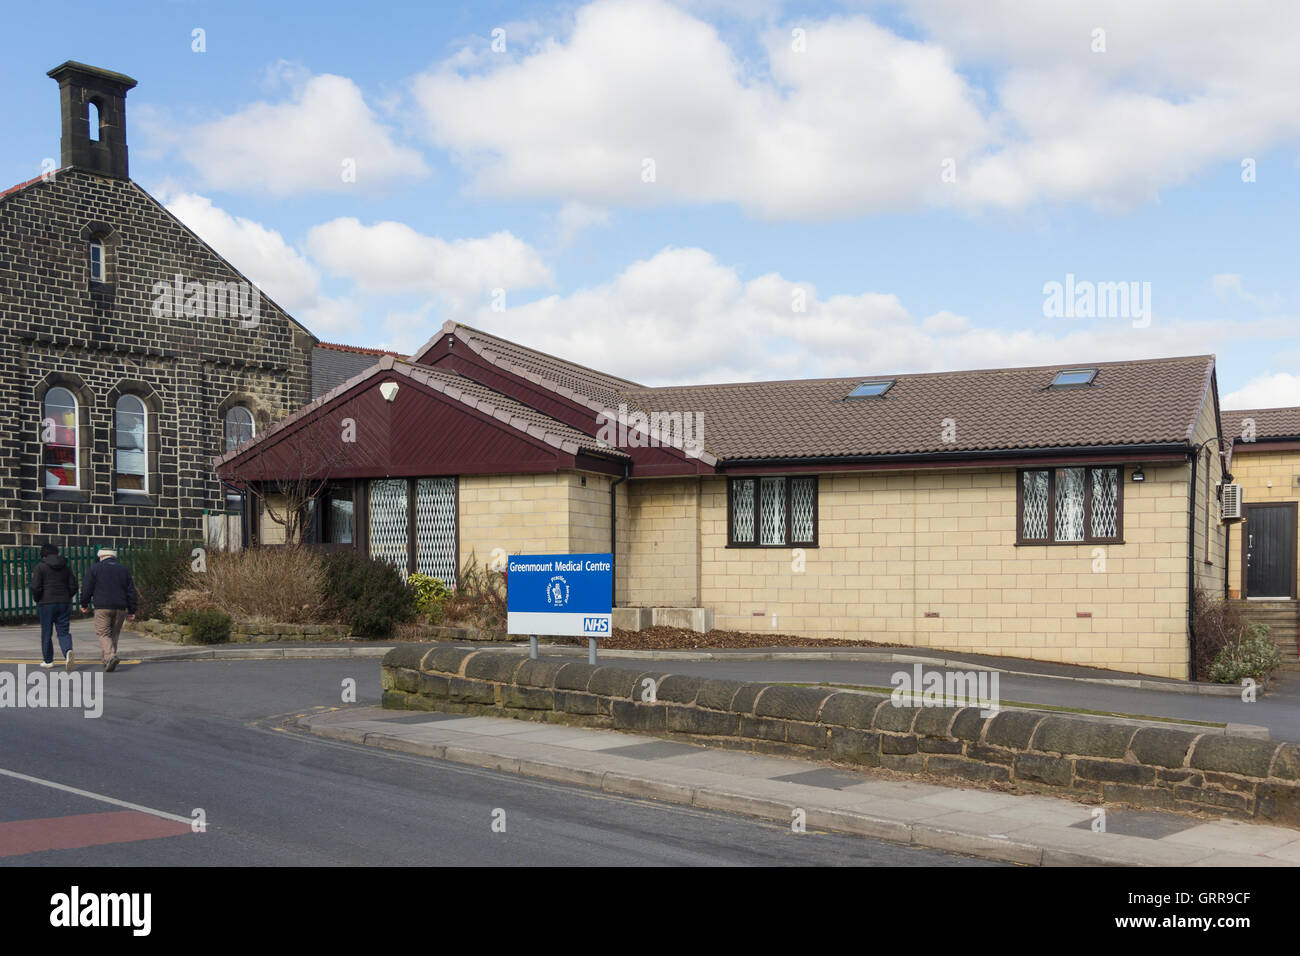 Greenmount Medical Centre, in the village of Greenmount, Lancashire. A multi-doctor NHS GP practice and healthcare - Stock Image